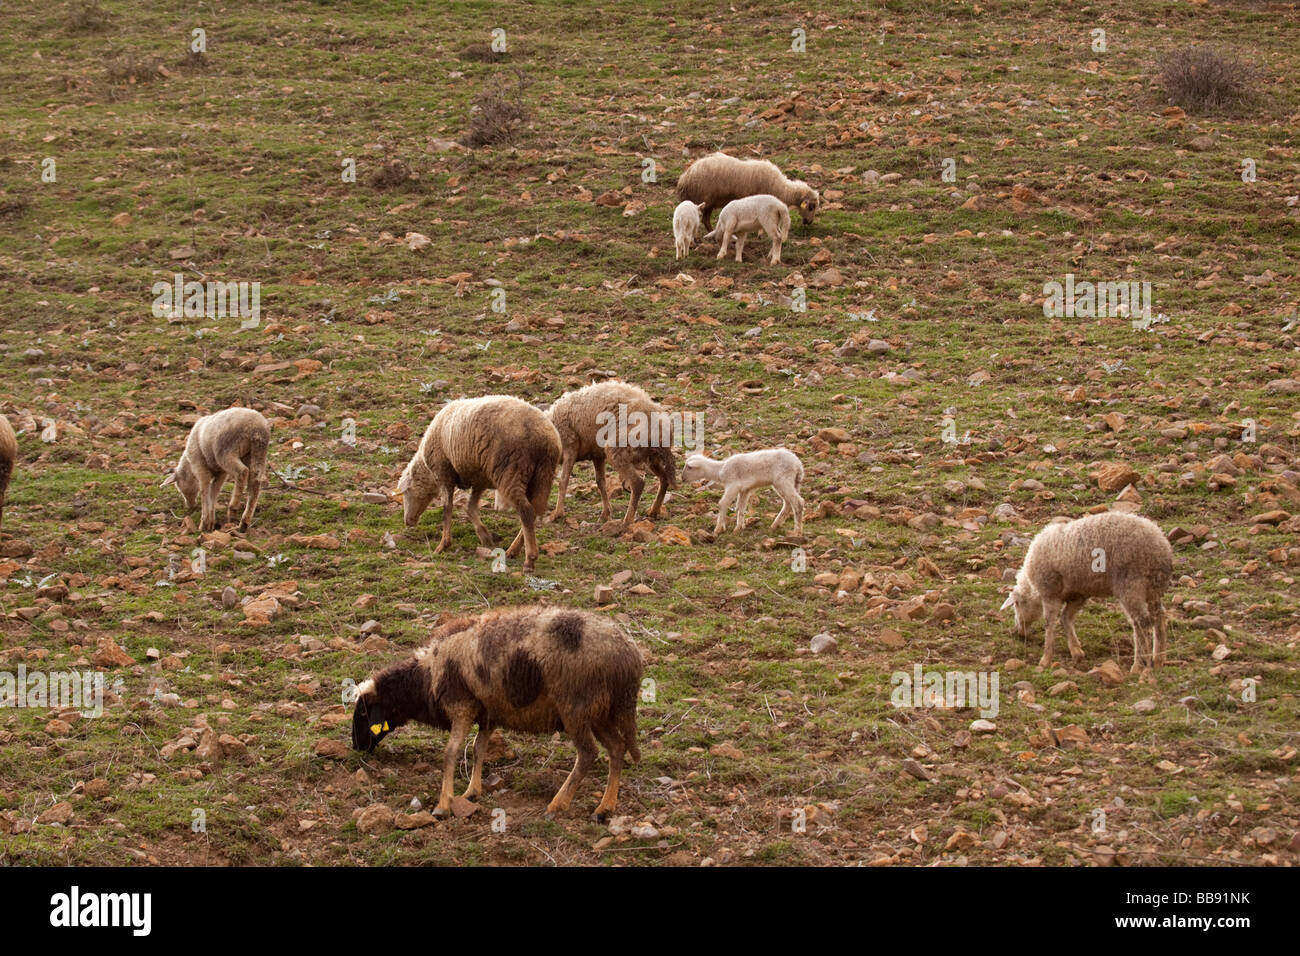 Sheep grazing on a hillside in central Turkey - Stock Image